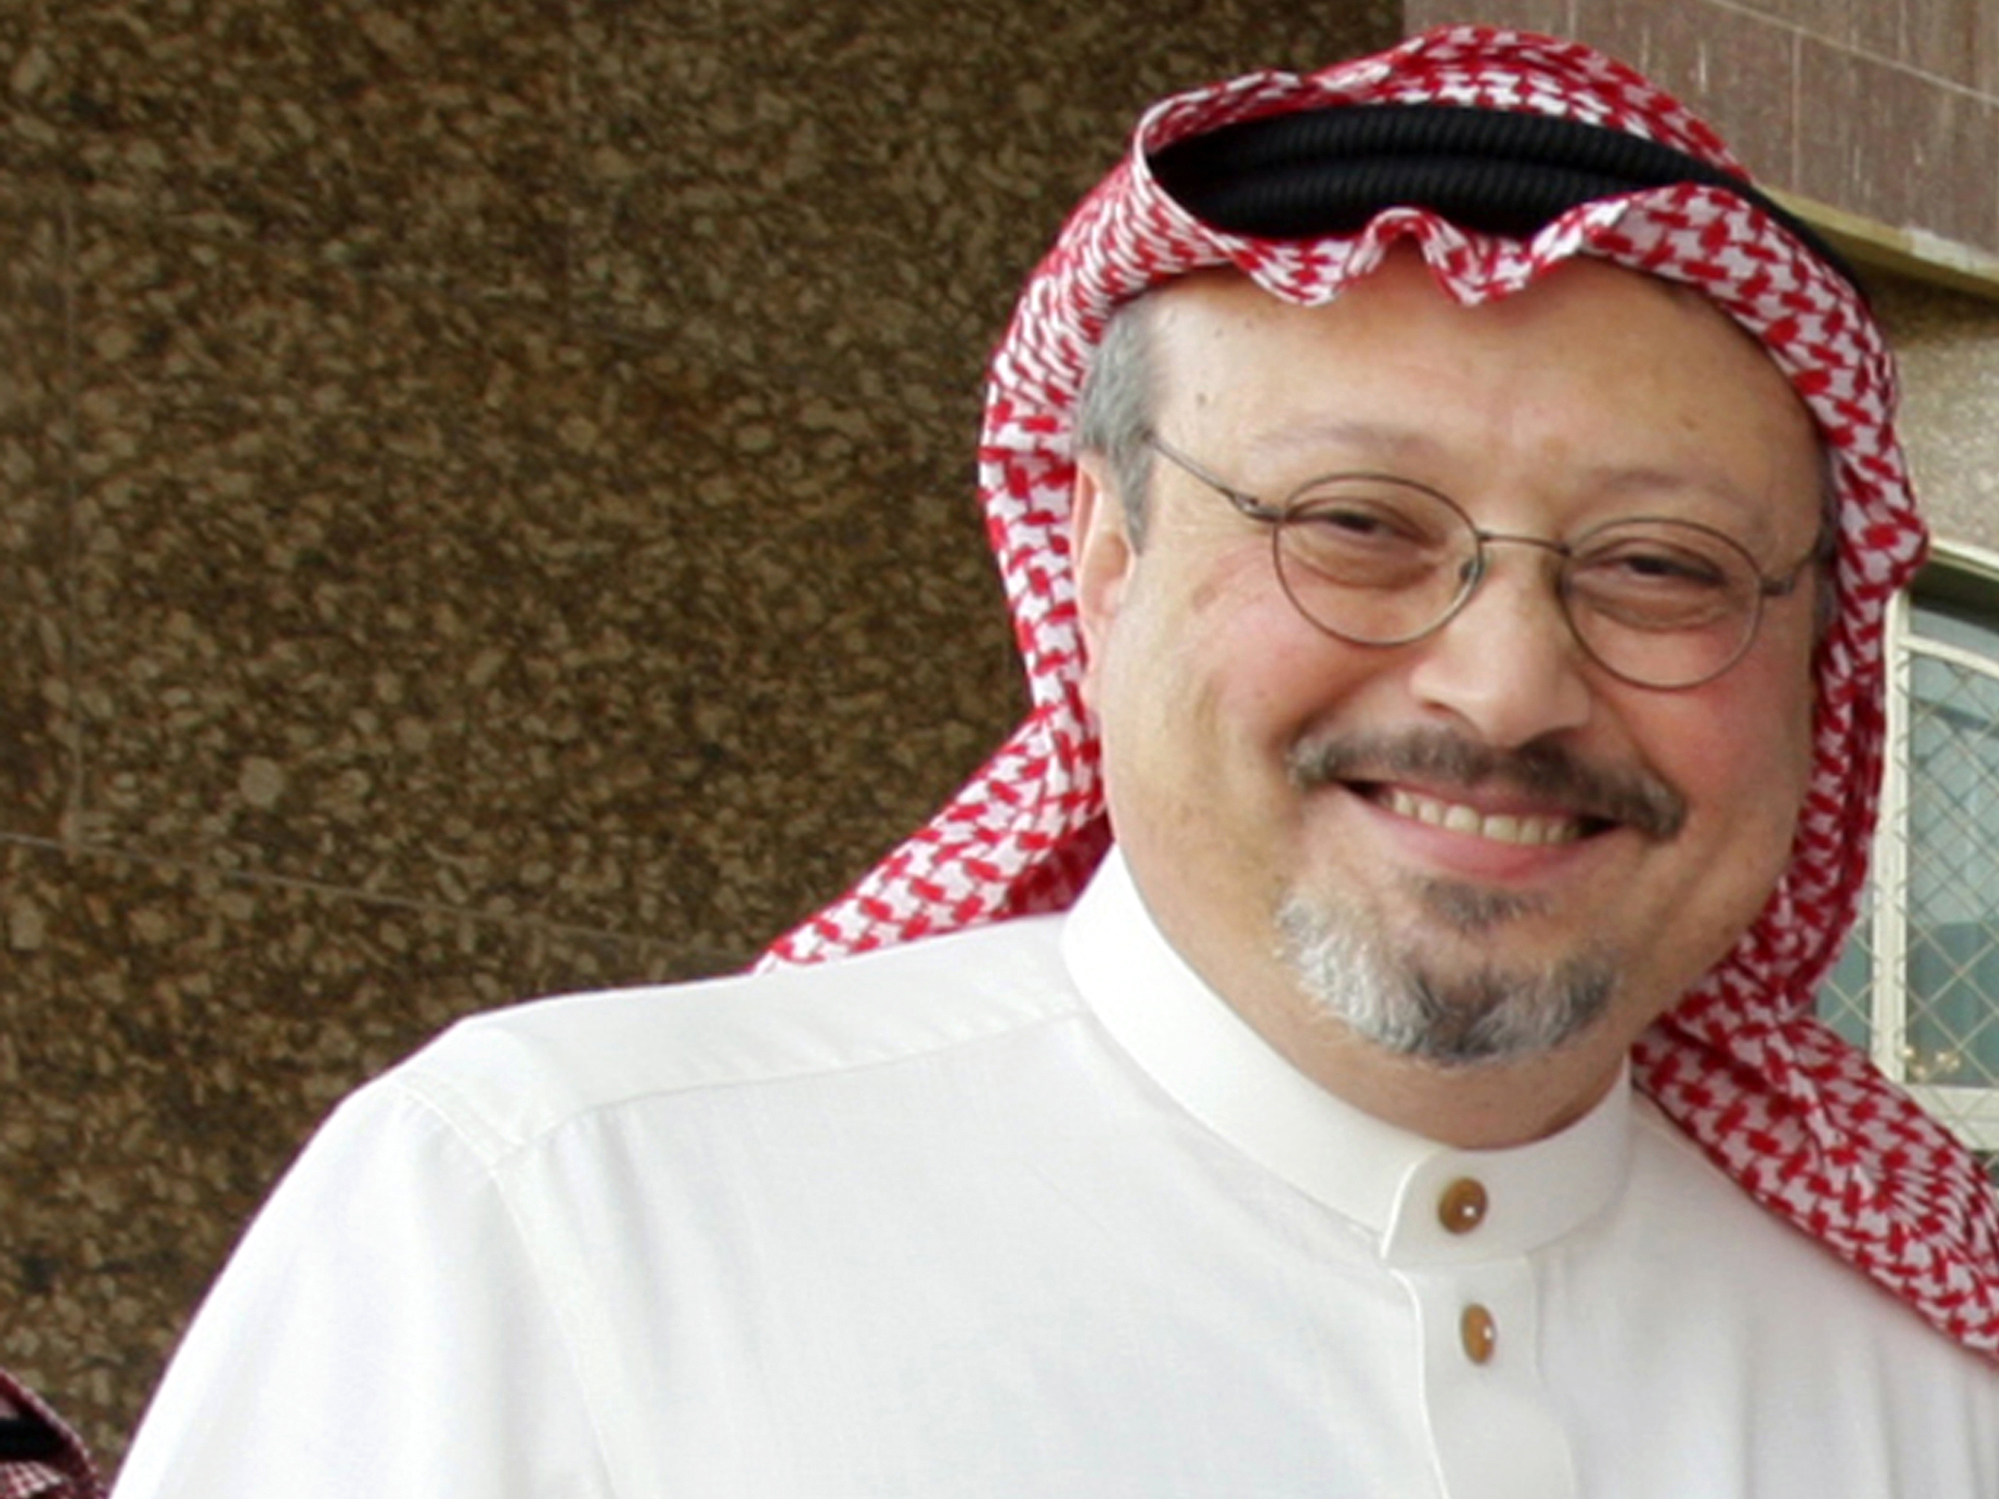 Jamal Khashoggi's Last Column Before Disappearance Calls For Free Expression